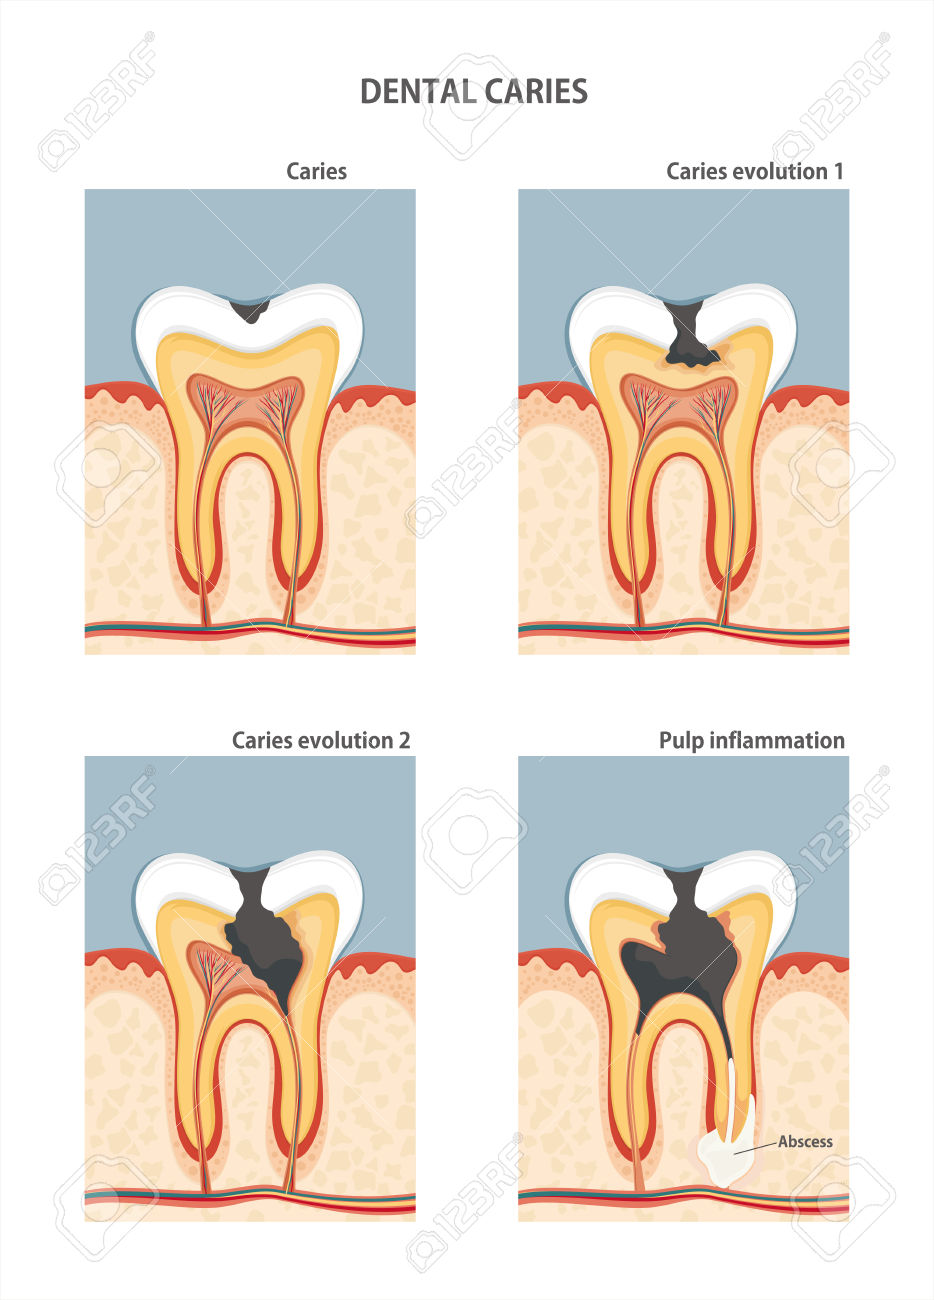 preventing and treating common dental problems essay Know how to prevent and treat all kind of dental problems and diseases expert dentists in maumee, ohio can help you to deal and overcome all kind of dental issues.